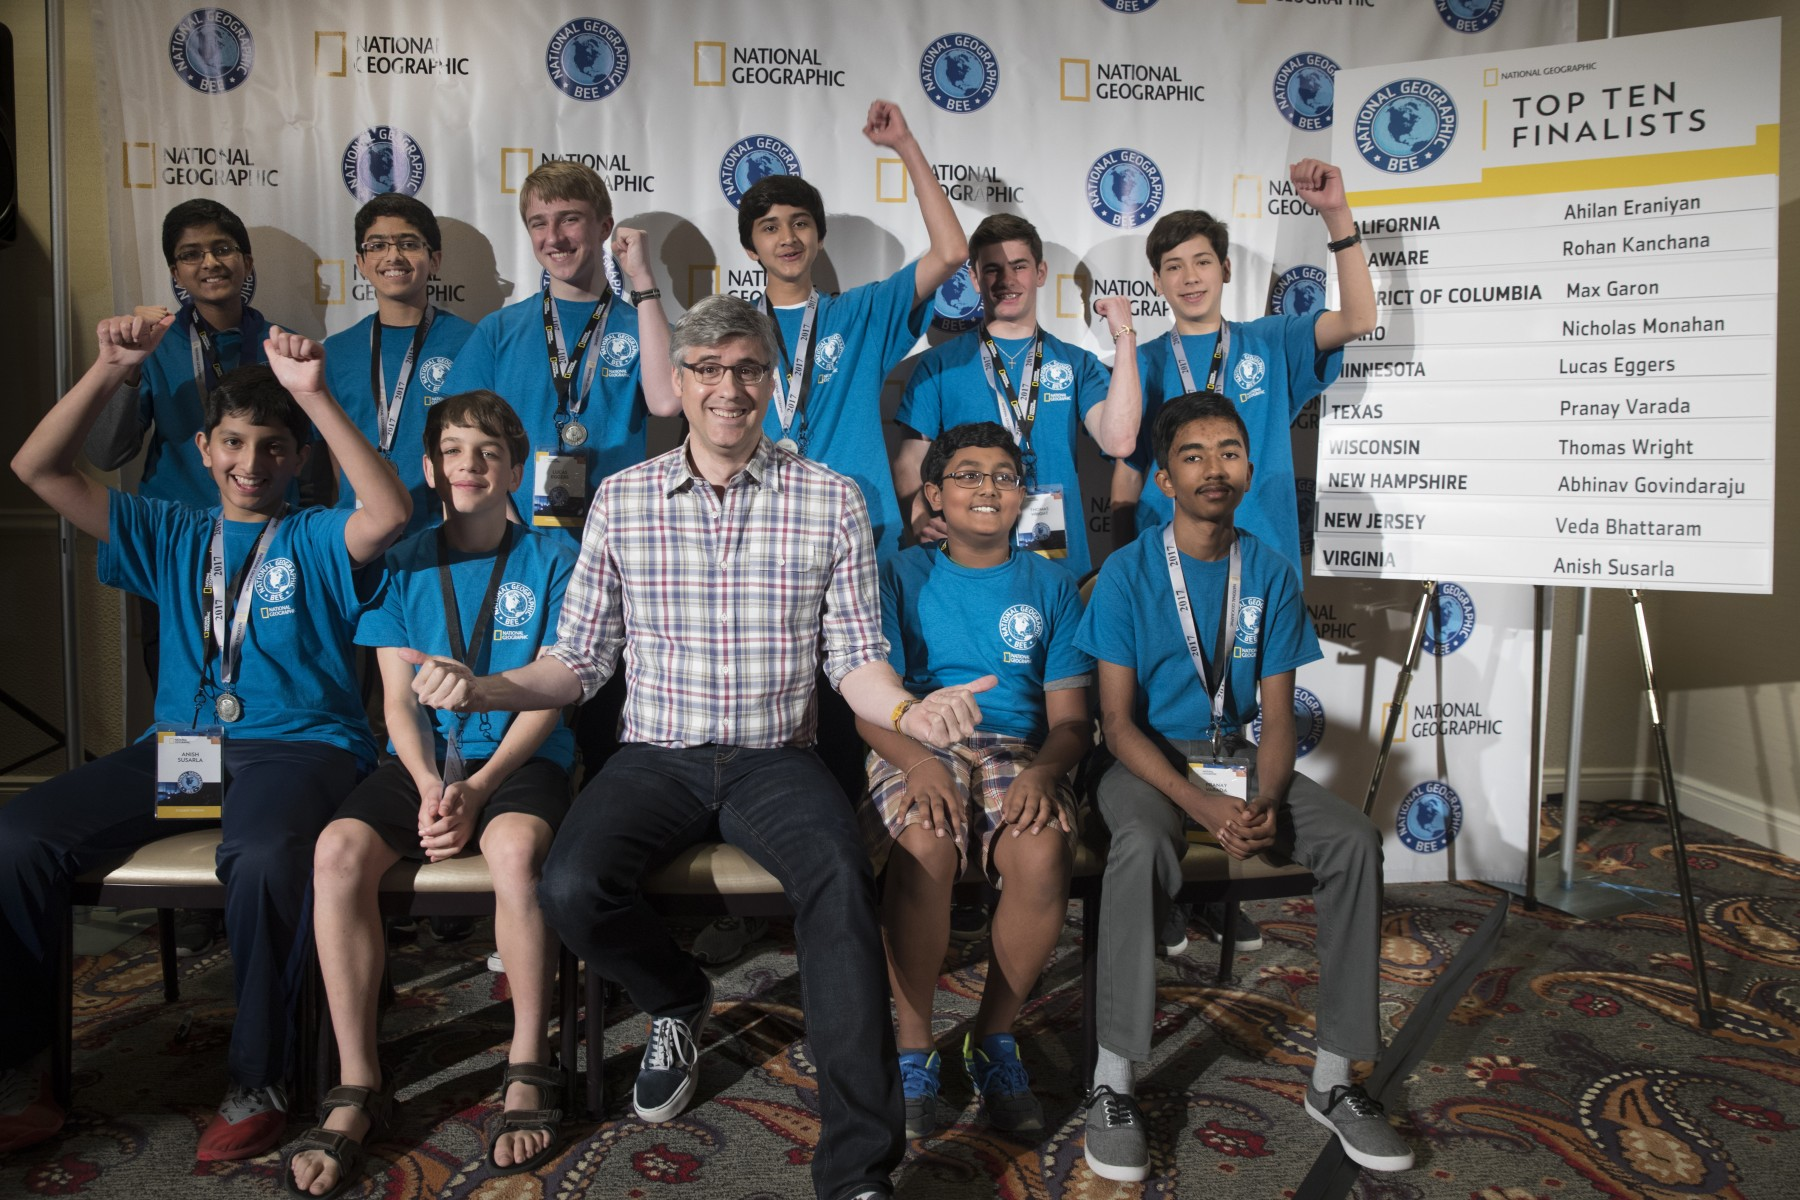 These top 10 finishers who competed in today's preliminary round of the 2017 National Geographic Bee held in Washington, D.C., will take part in the final round of the competition on Wednesday, May 17. They are (top row, left to right) Abhinav Govindaraju of New Hampshire, Veda Bhattaram of New Jersey, Lucas Eggers of Minnesota, Rohan Kanchana of Delaware, Thomas Wright of Wisconsin and Max Garon of the District of Columbia (bottom row, left to right) Anish Susarla of Virginia, Nicholas Monahan of Idaho, Mo Rocca, moderator of the 2017 National Geographic Bee,  Ahilan Eraniyan of California and Pranay Varada of Texas.